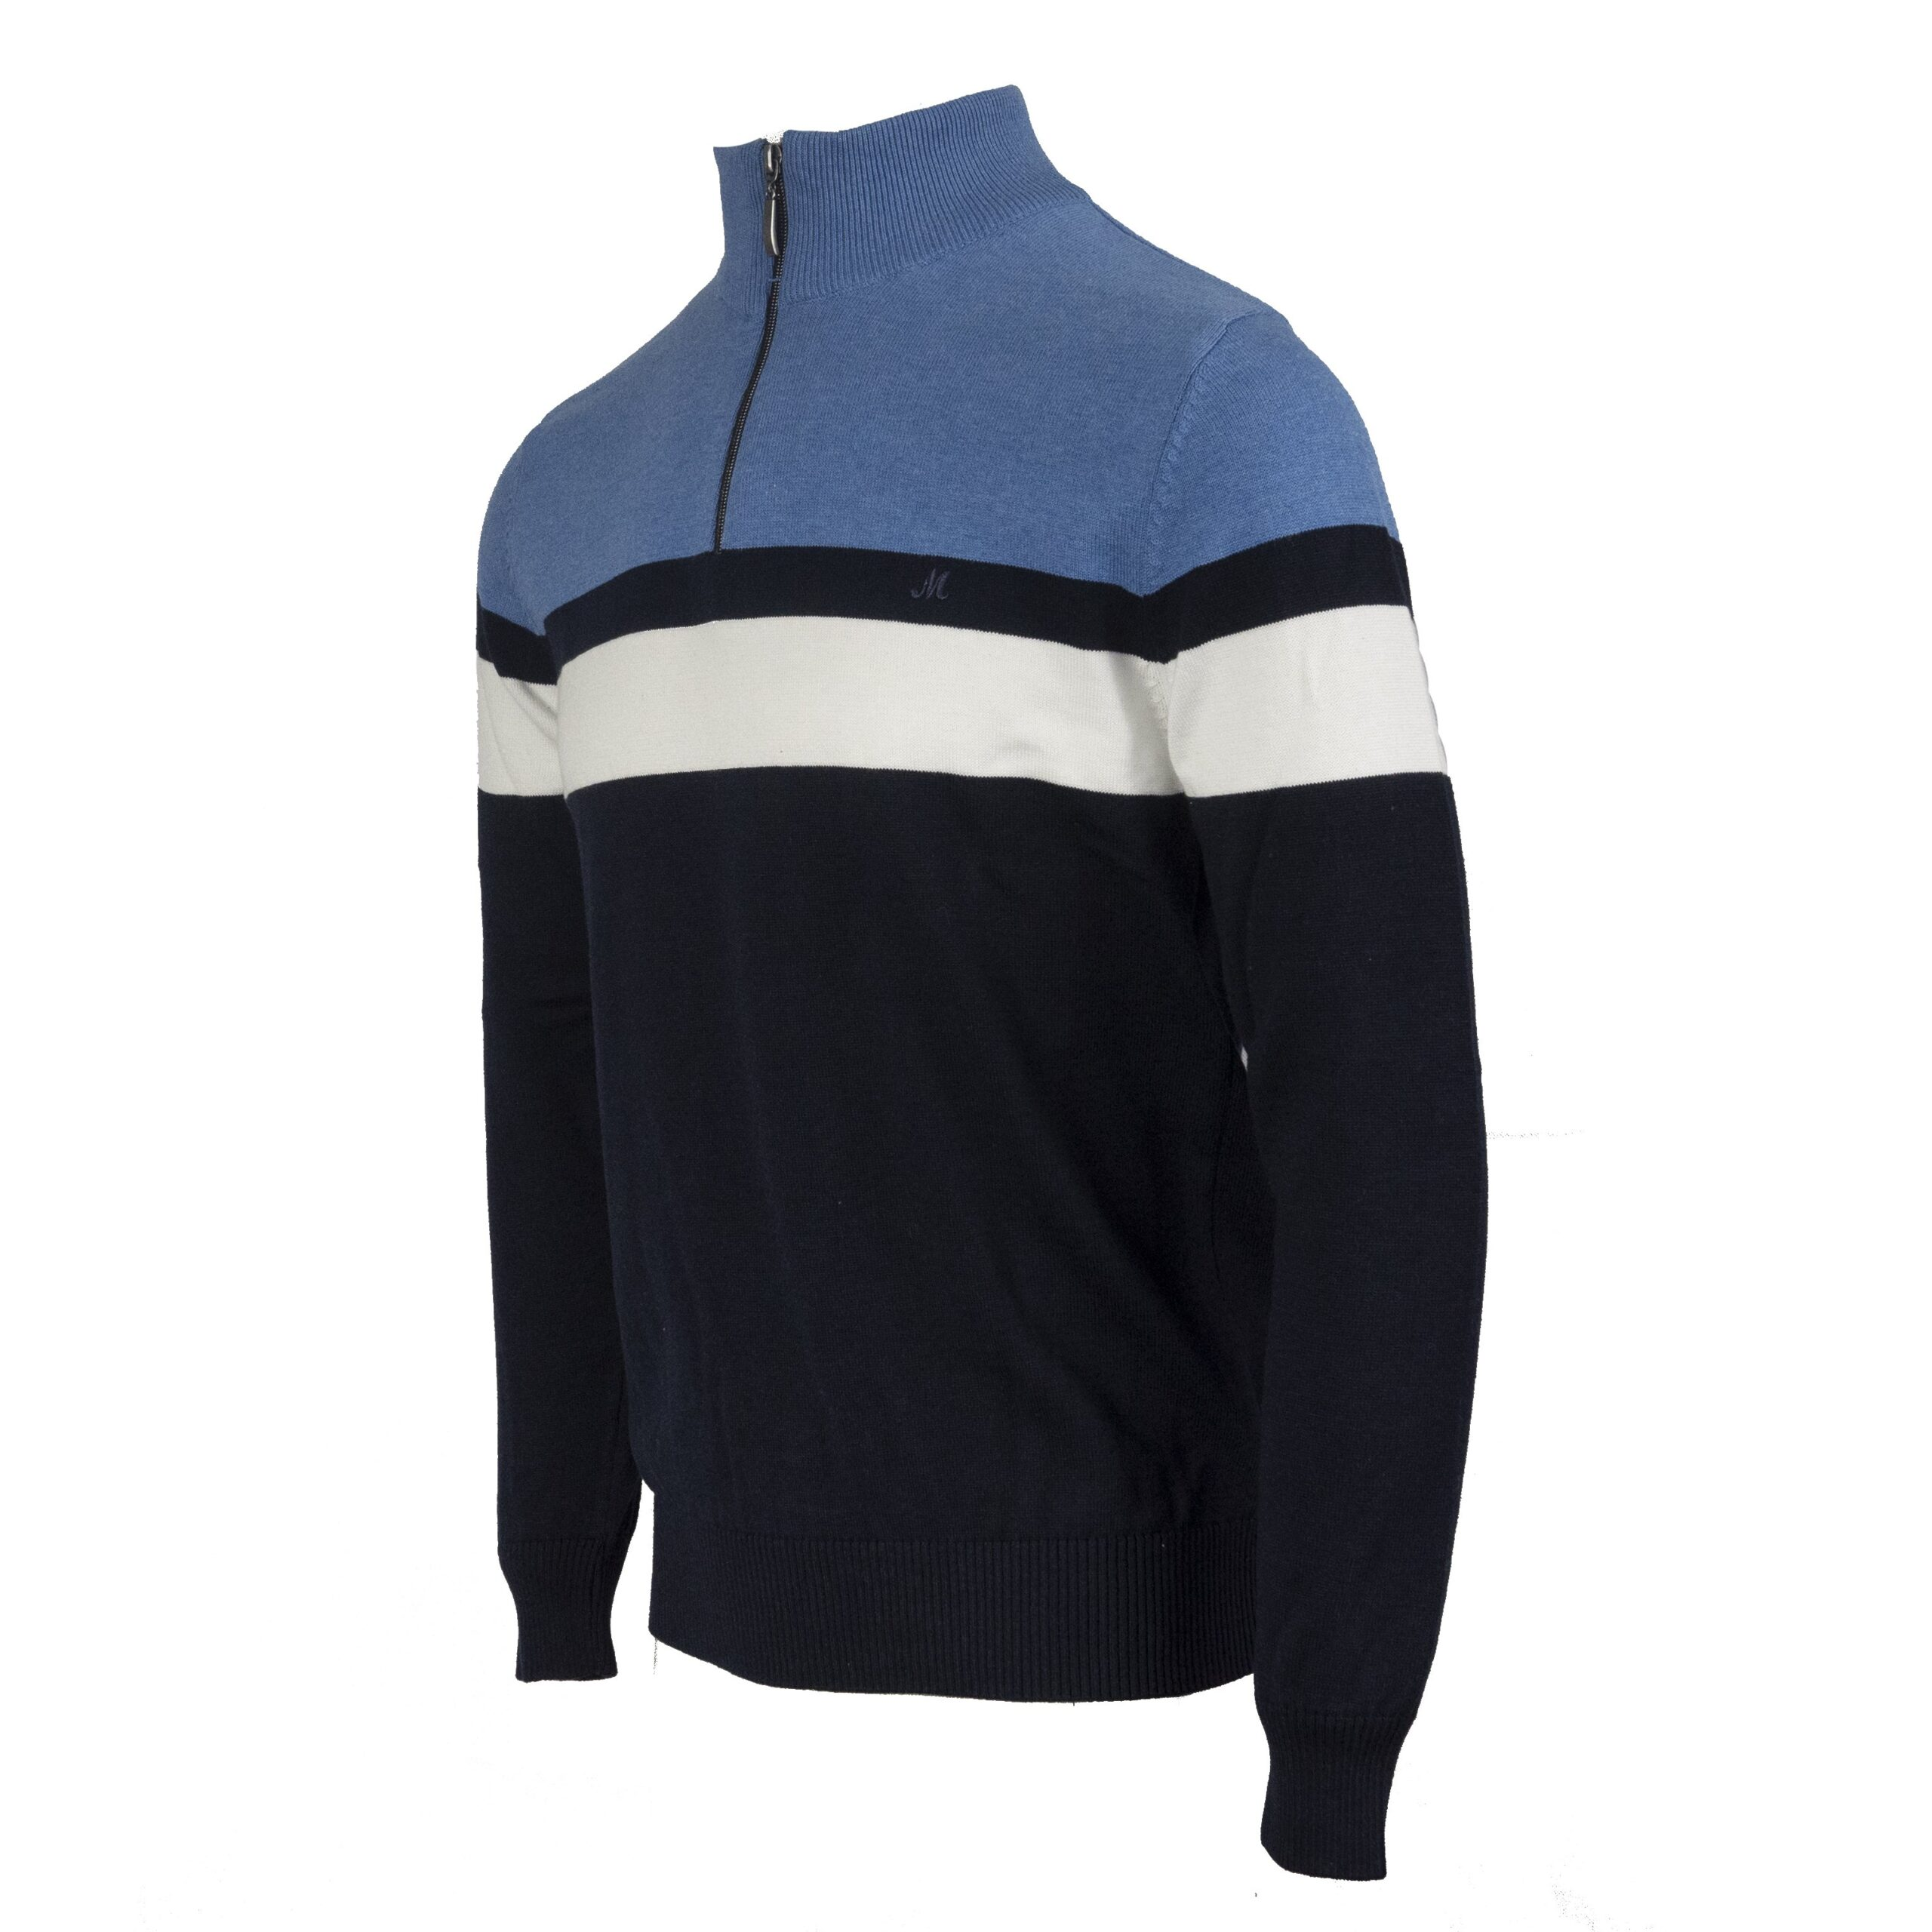 SOFIA MID-BLUE/NAVY/OFF-WHITE 1/4 ZIP KNITWEAR